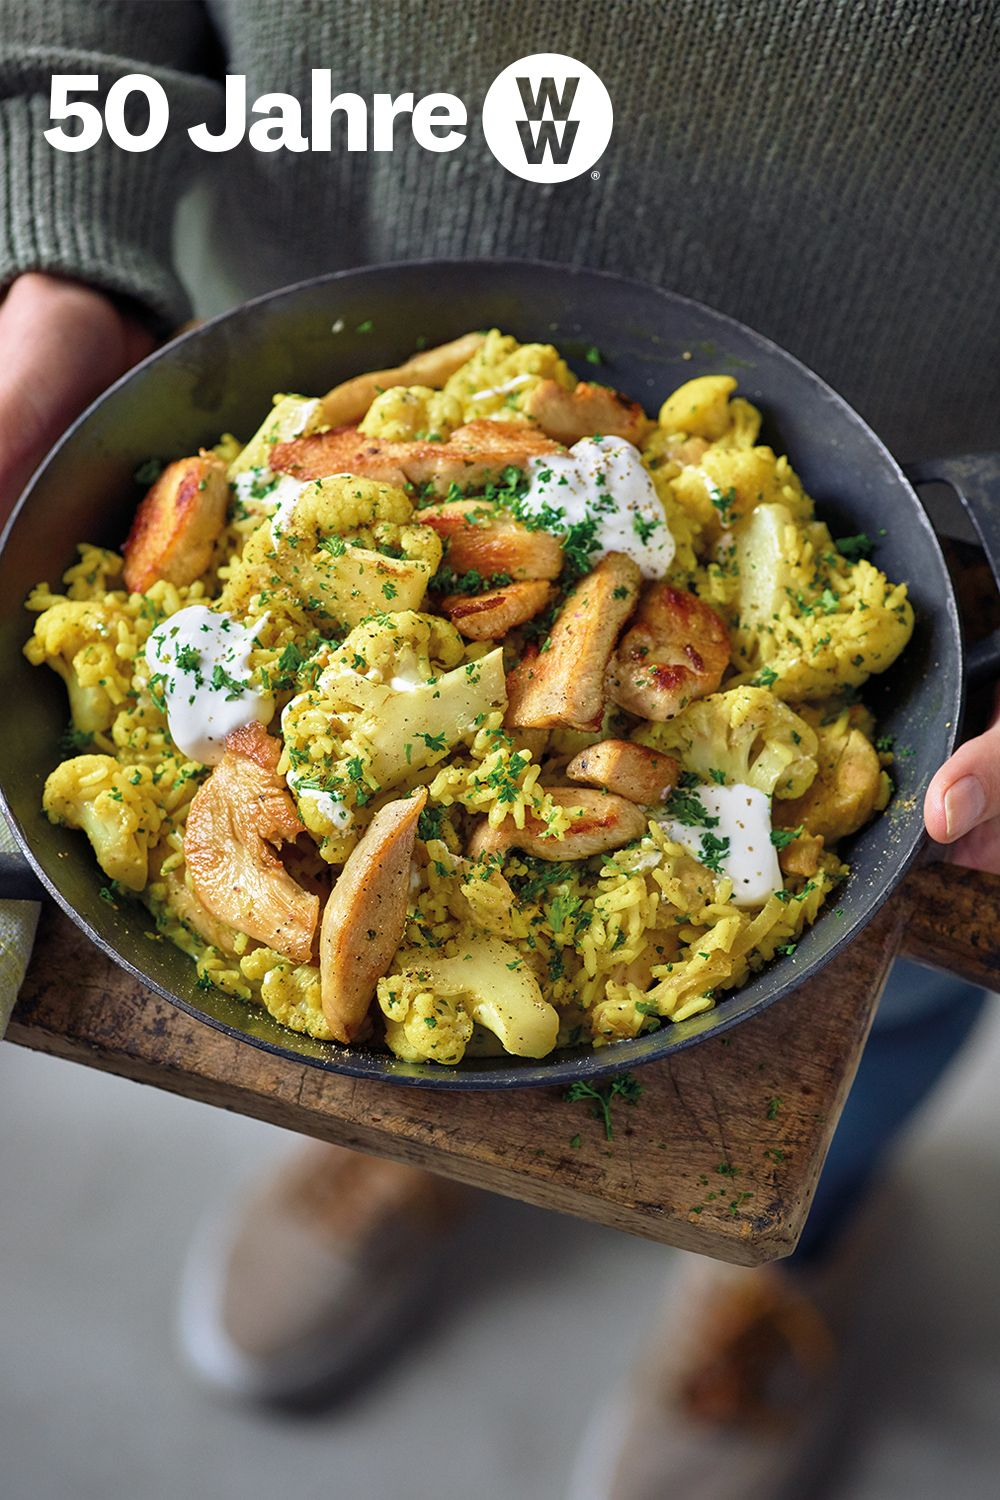 Photo of Curry rice pan with chicken breast